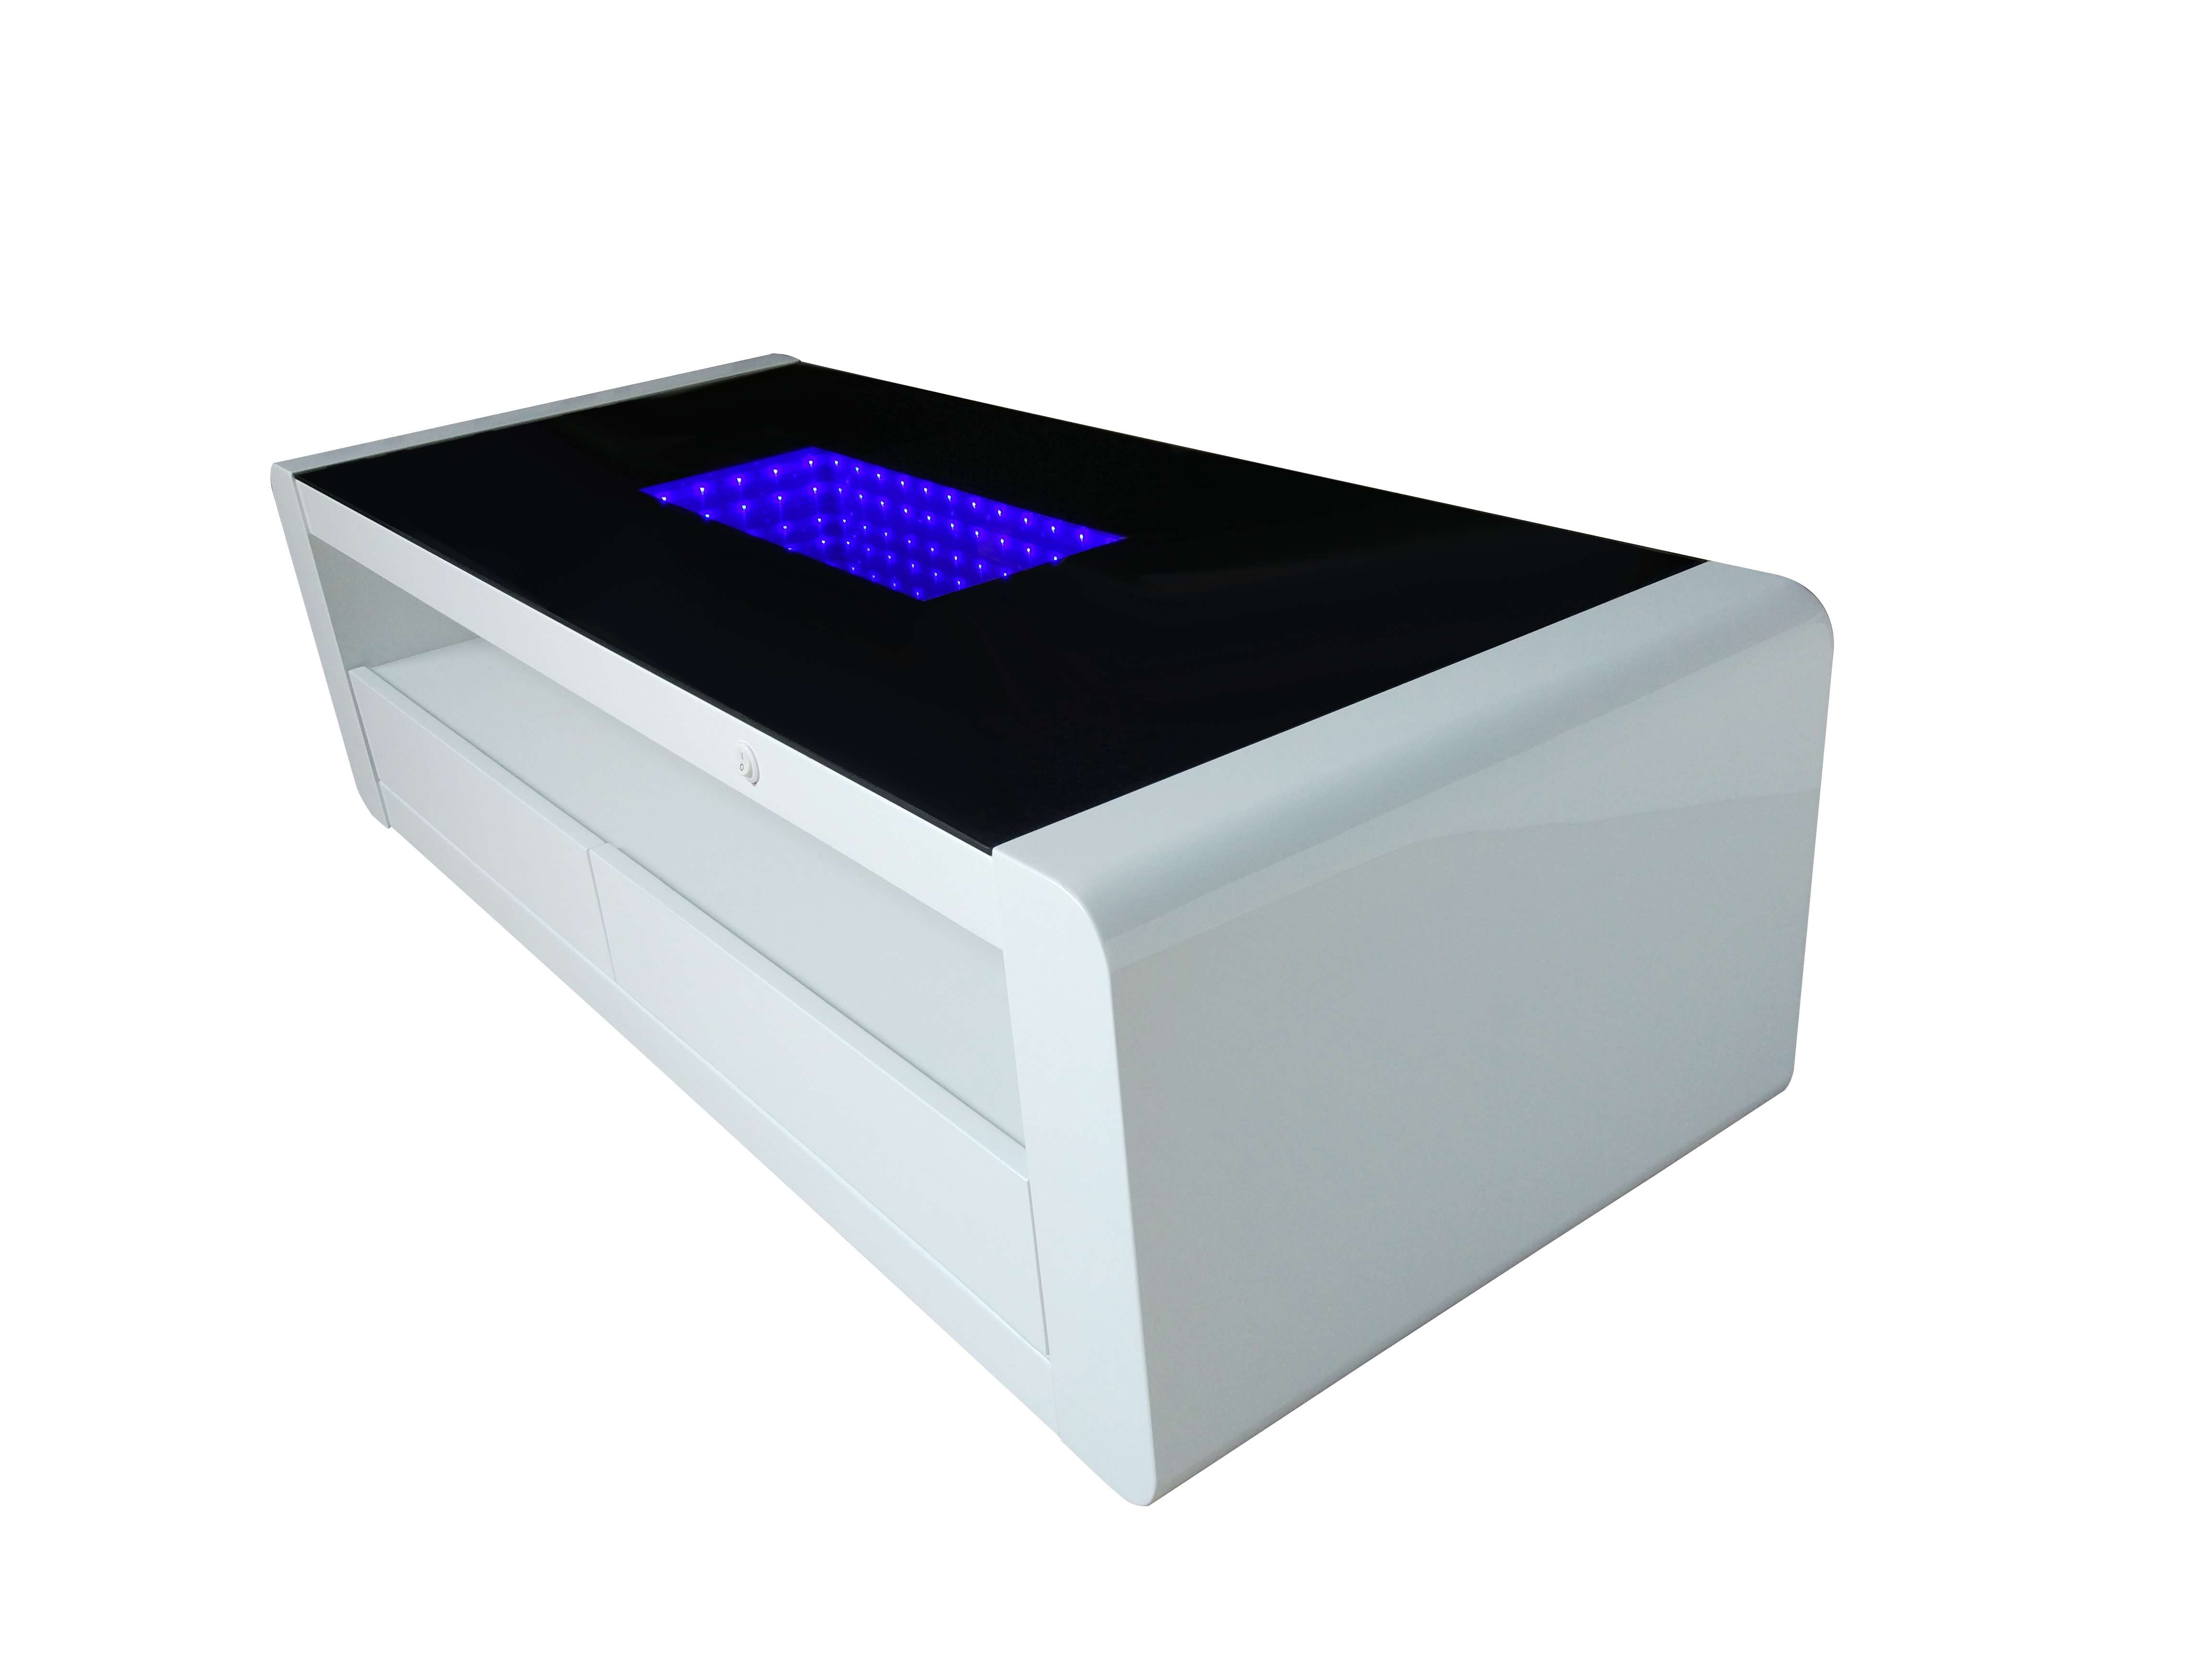 Best And Newest High Gloss Coffee Tables Pertaining To Matrix High Gloss Coffee Table – White & Black Gloss With Blue Led (View 5 of 20)